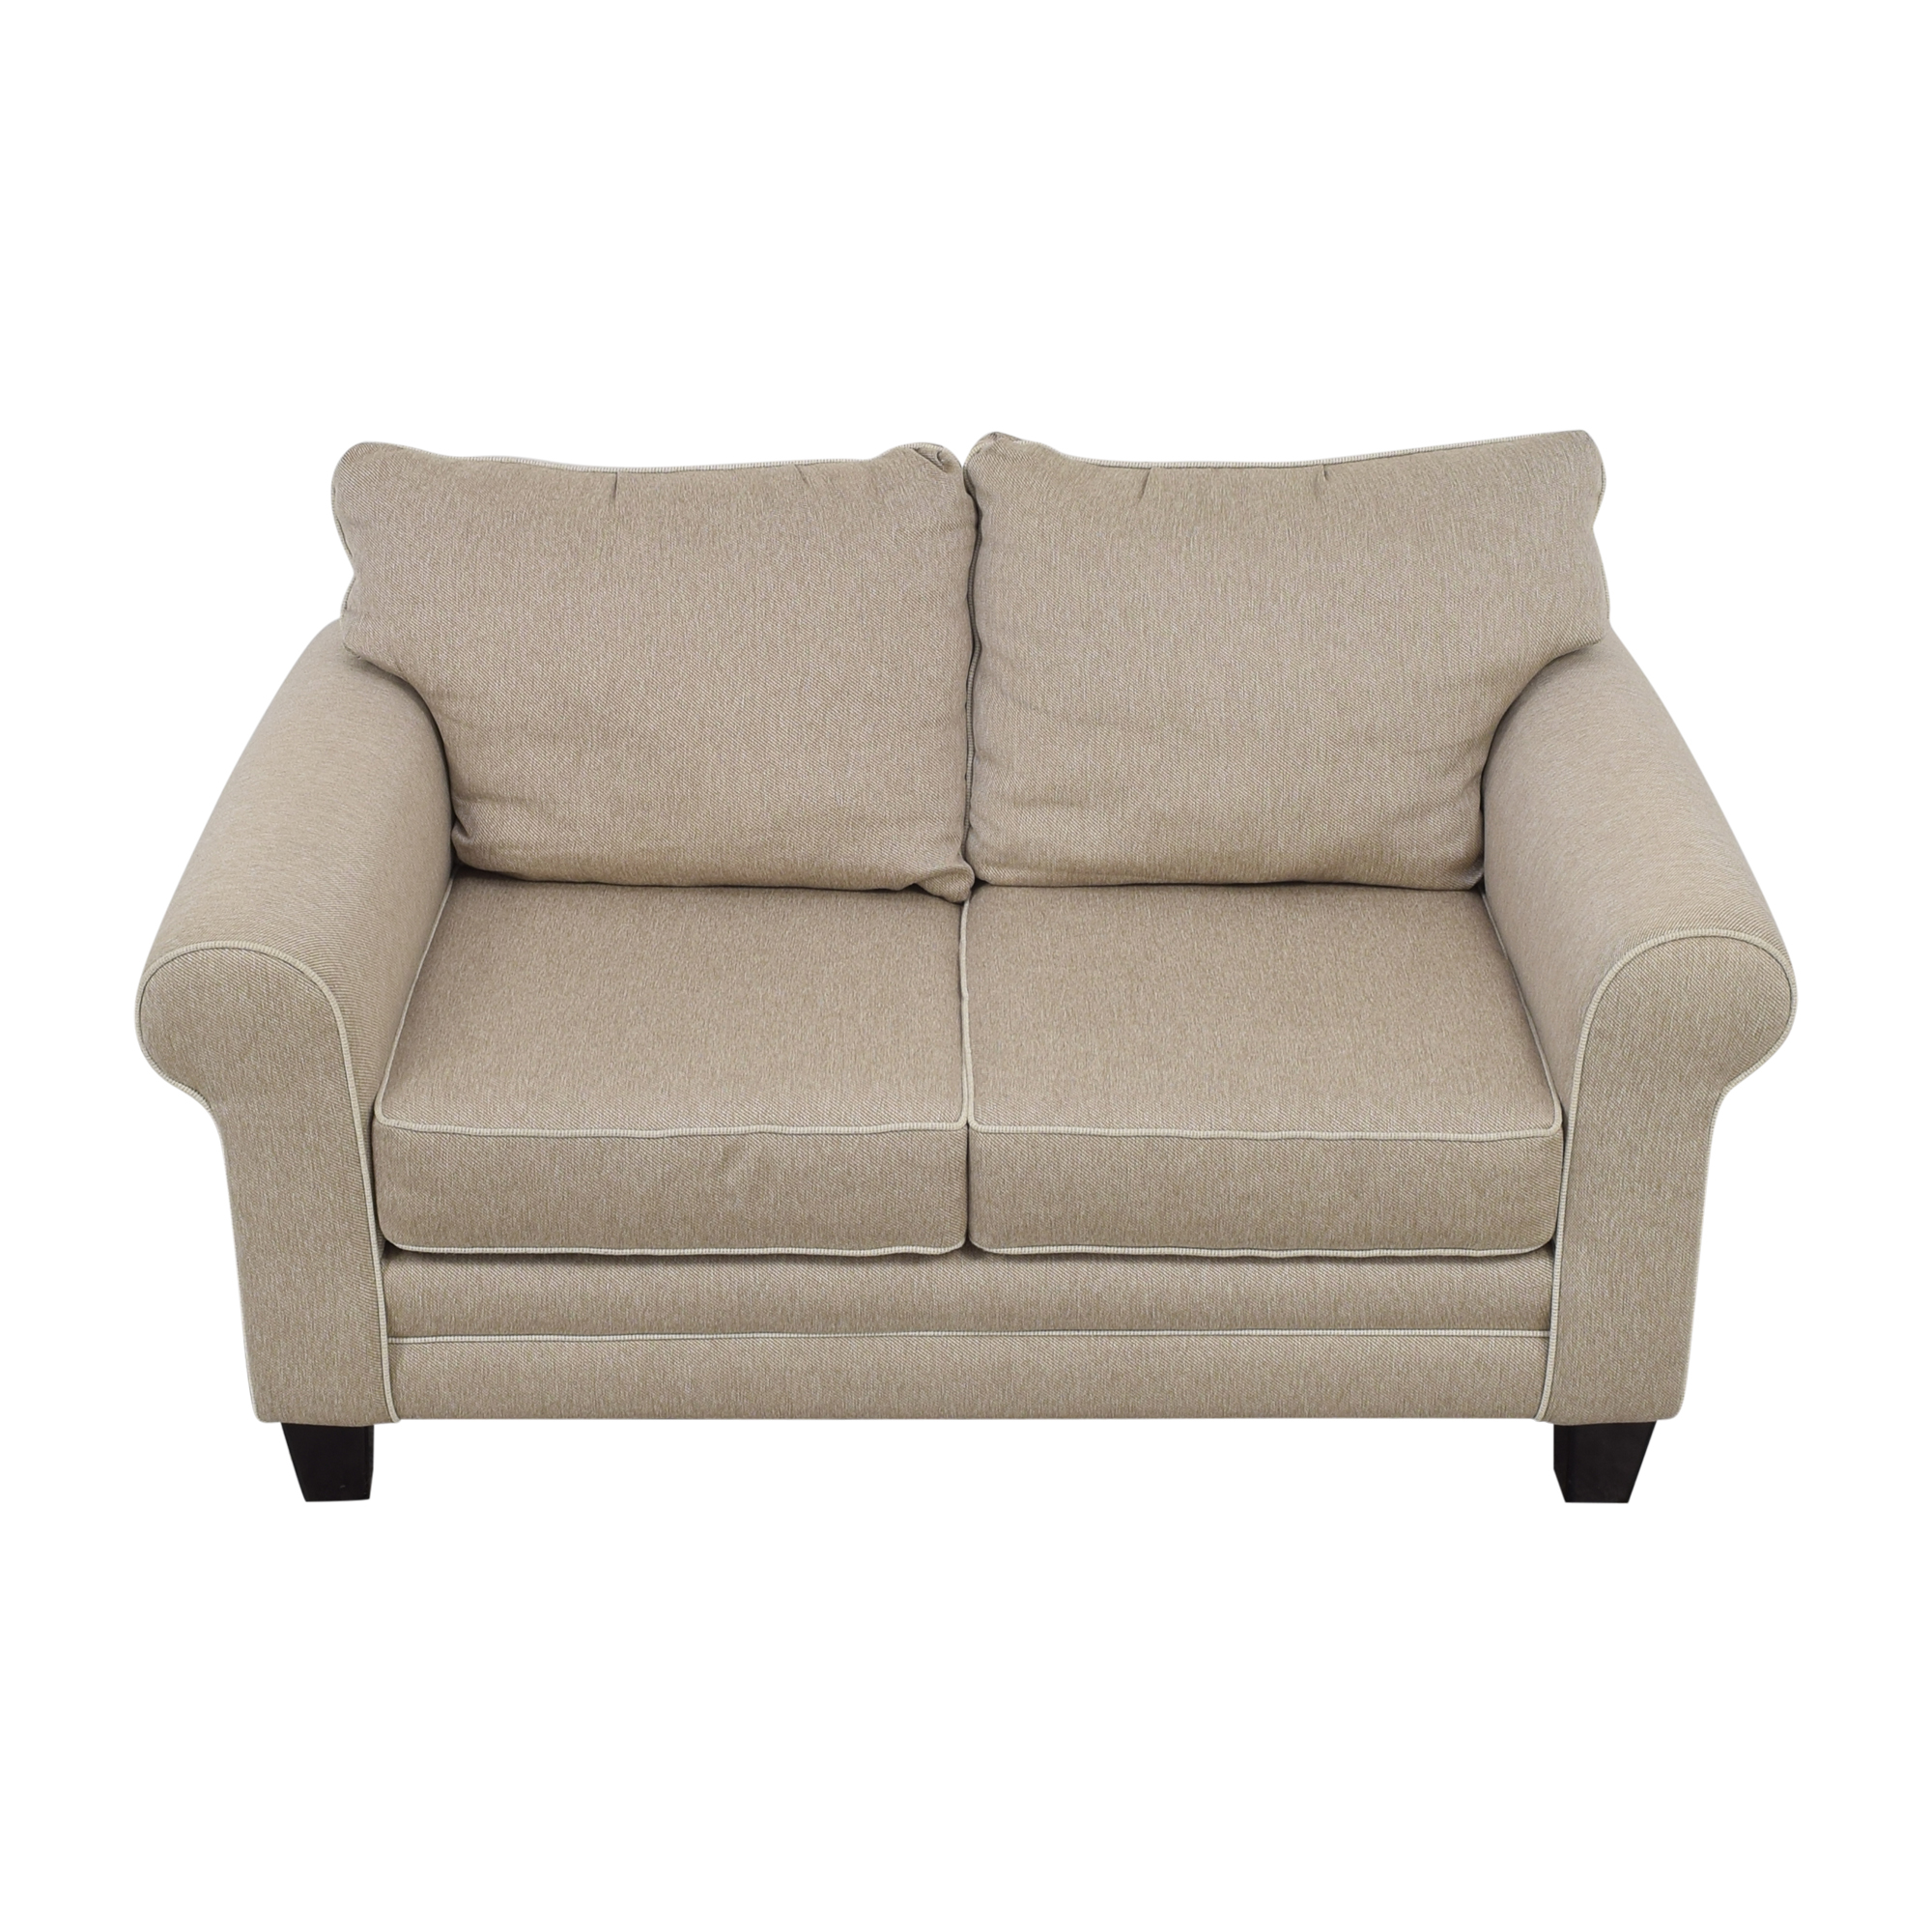 shop Raymour & Flanigan Raymour & Flanigan Beige Loveseat online